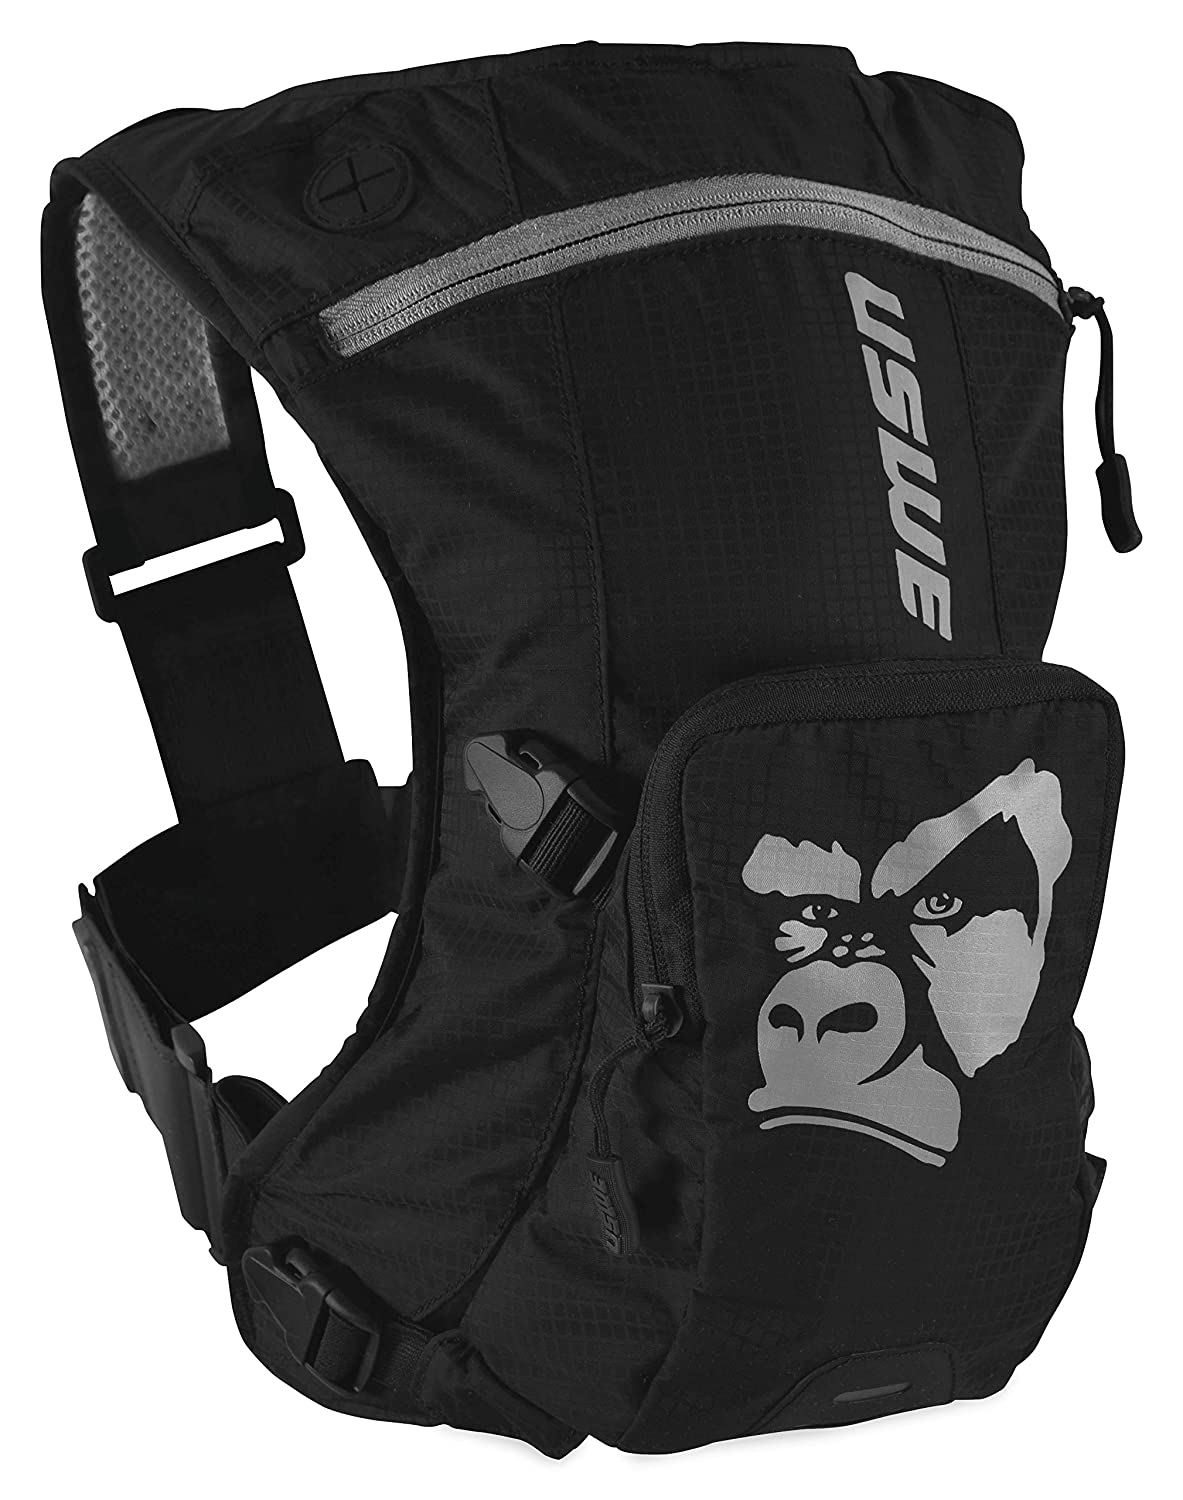 USWE Sports Ranger 3 Hydration Pack USWE5|#USWE Sports